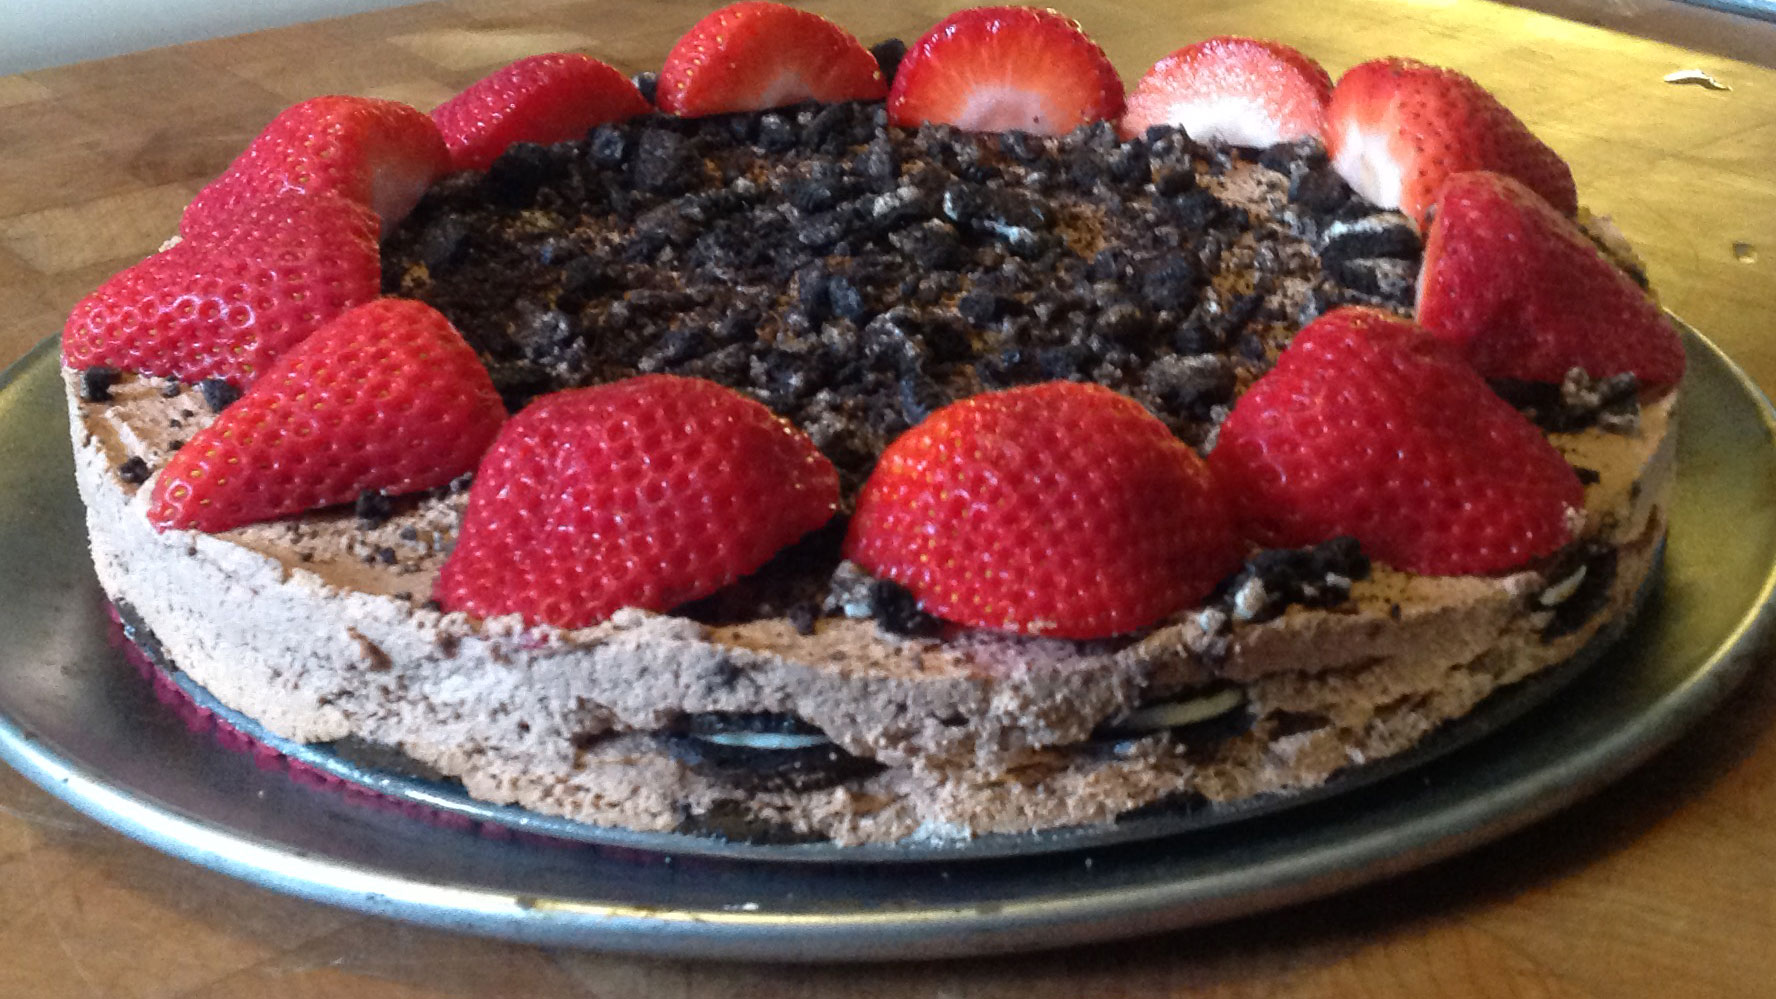 Strawberry-Oreo-Icebox-Cake_1558367105155.jpg